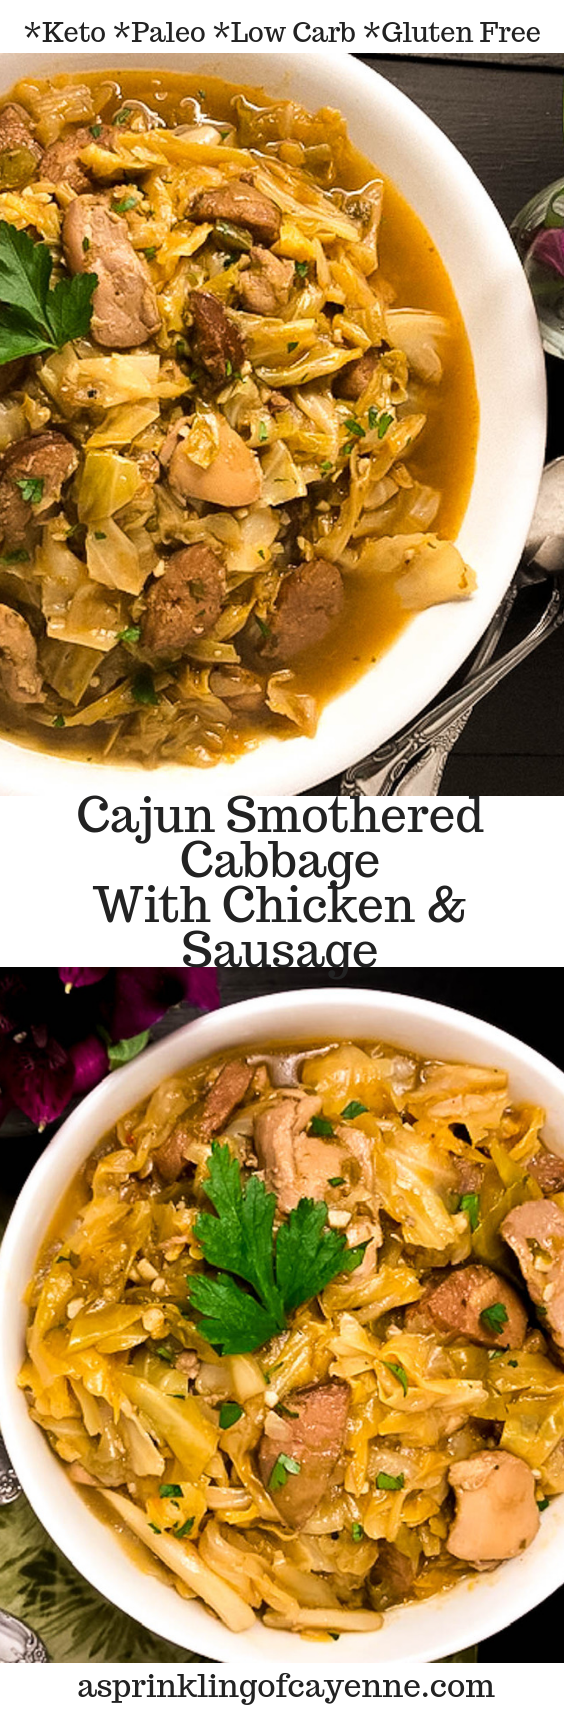 Cajun Smothered Cabbage with Chicken & Sausage Pinterest Pin | https://asprinklingofcayenne.com